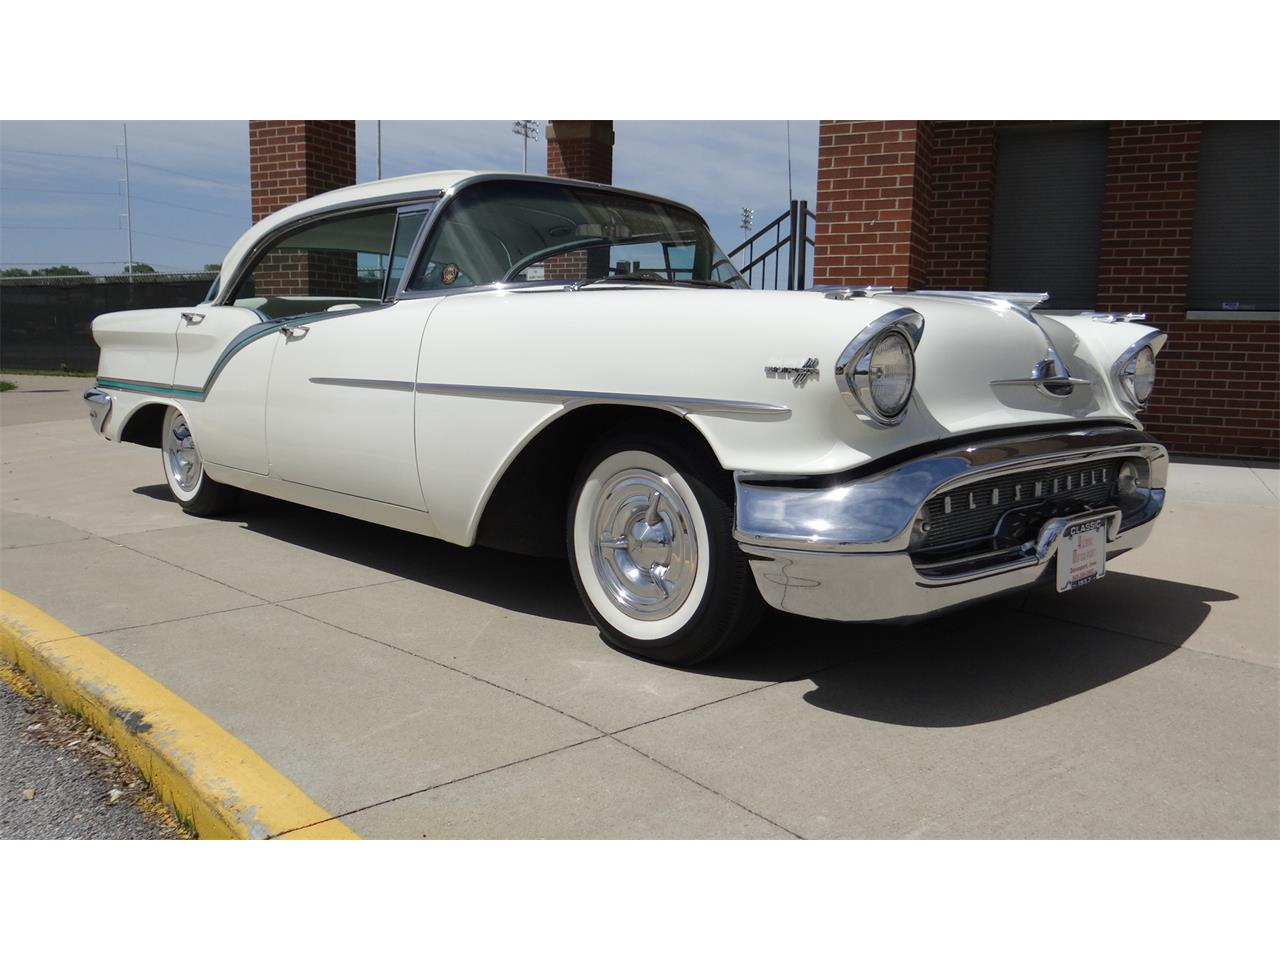 Large Picture of '57 Oldsmobile Super 88 located in Davenport Iowa Offered by Klemme Klassic Kars - Q5GJ